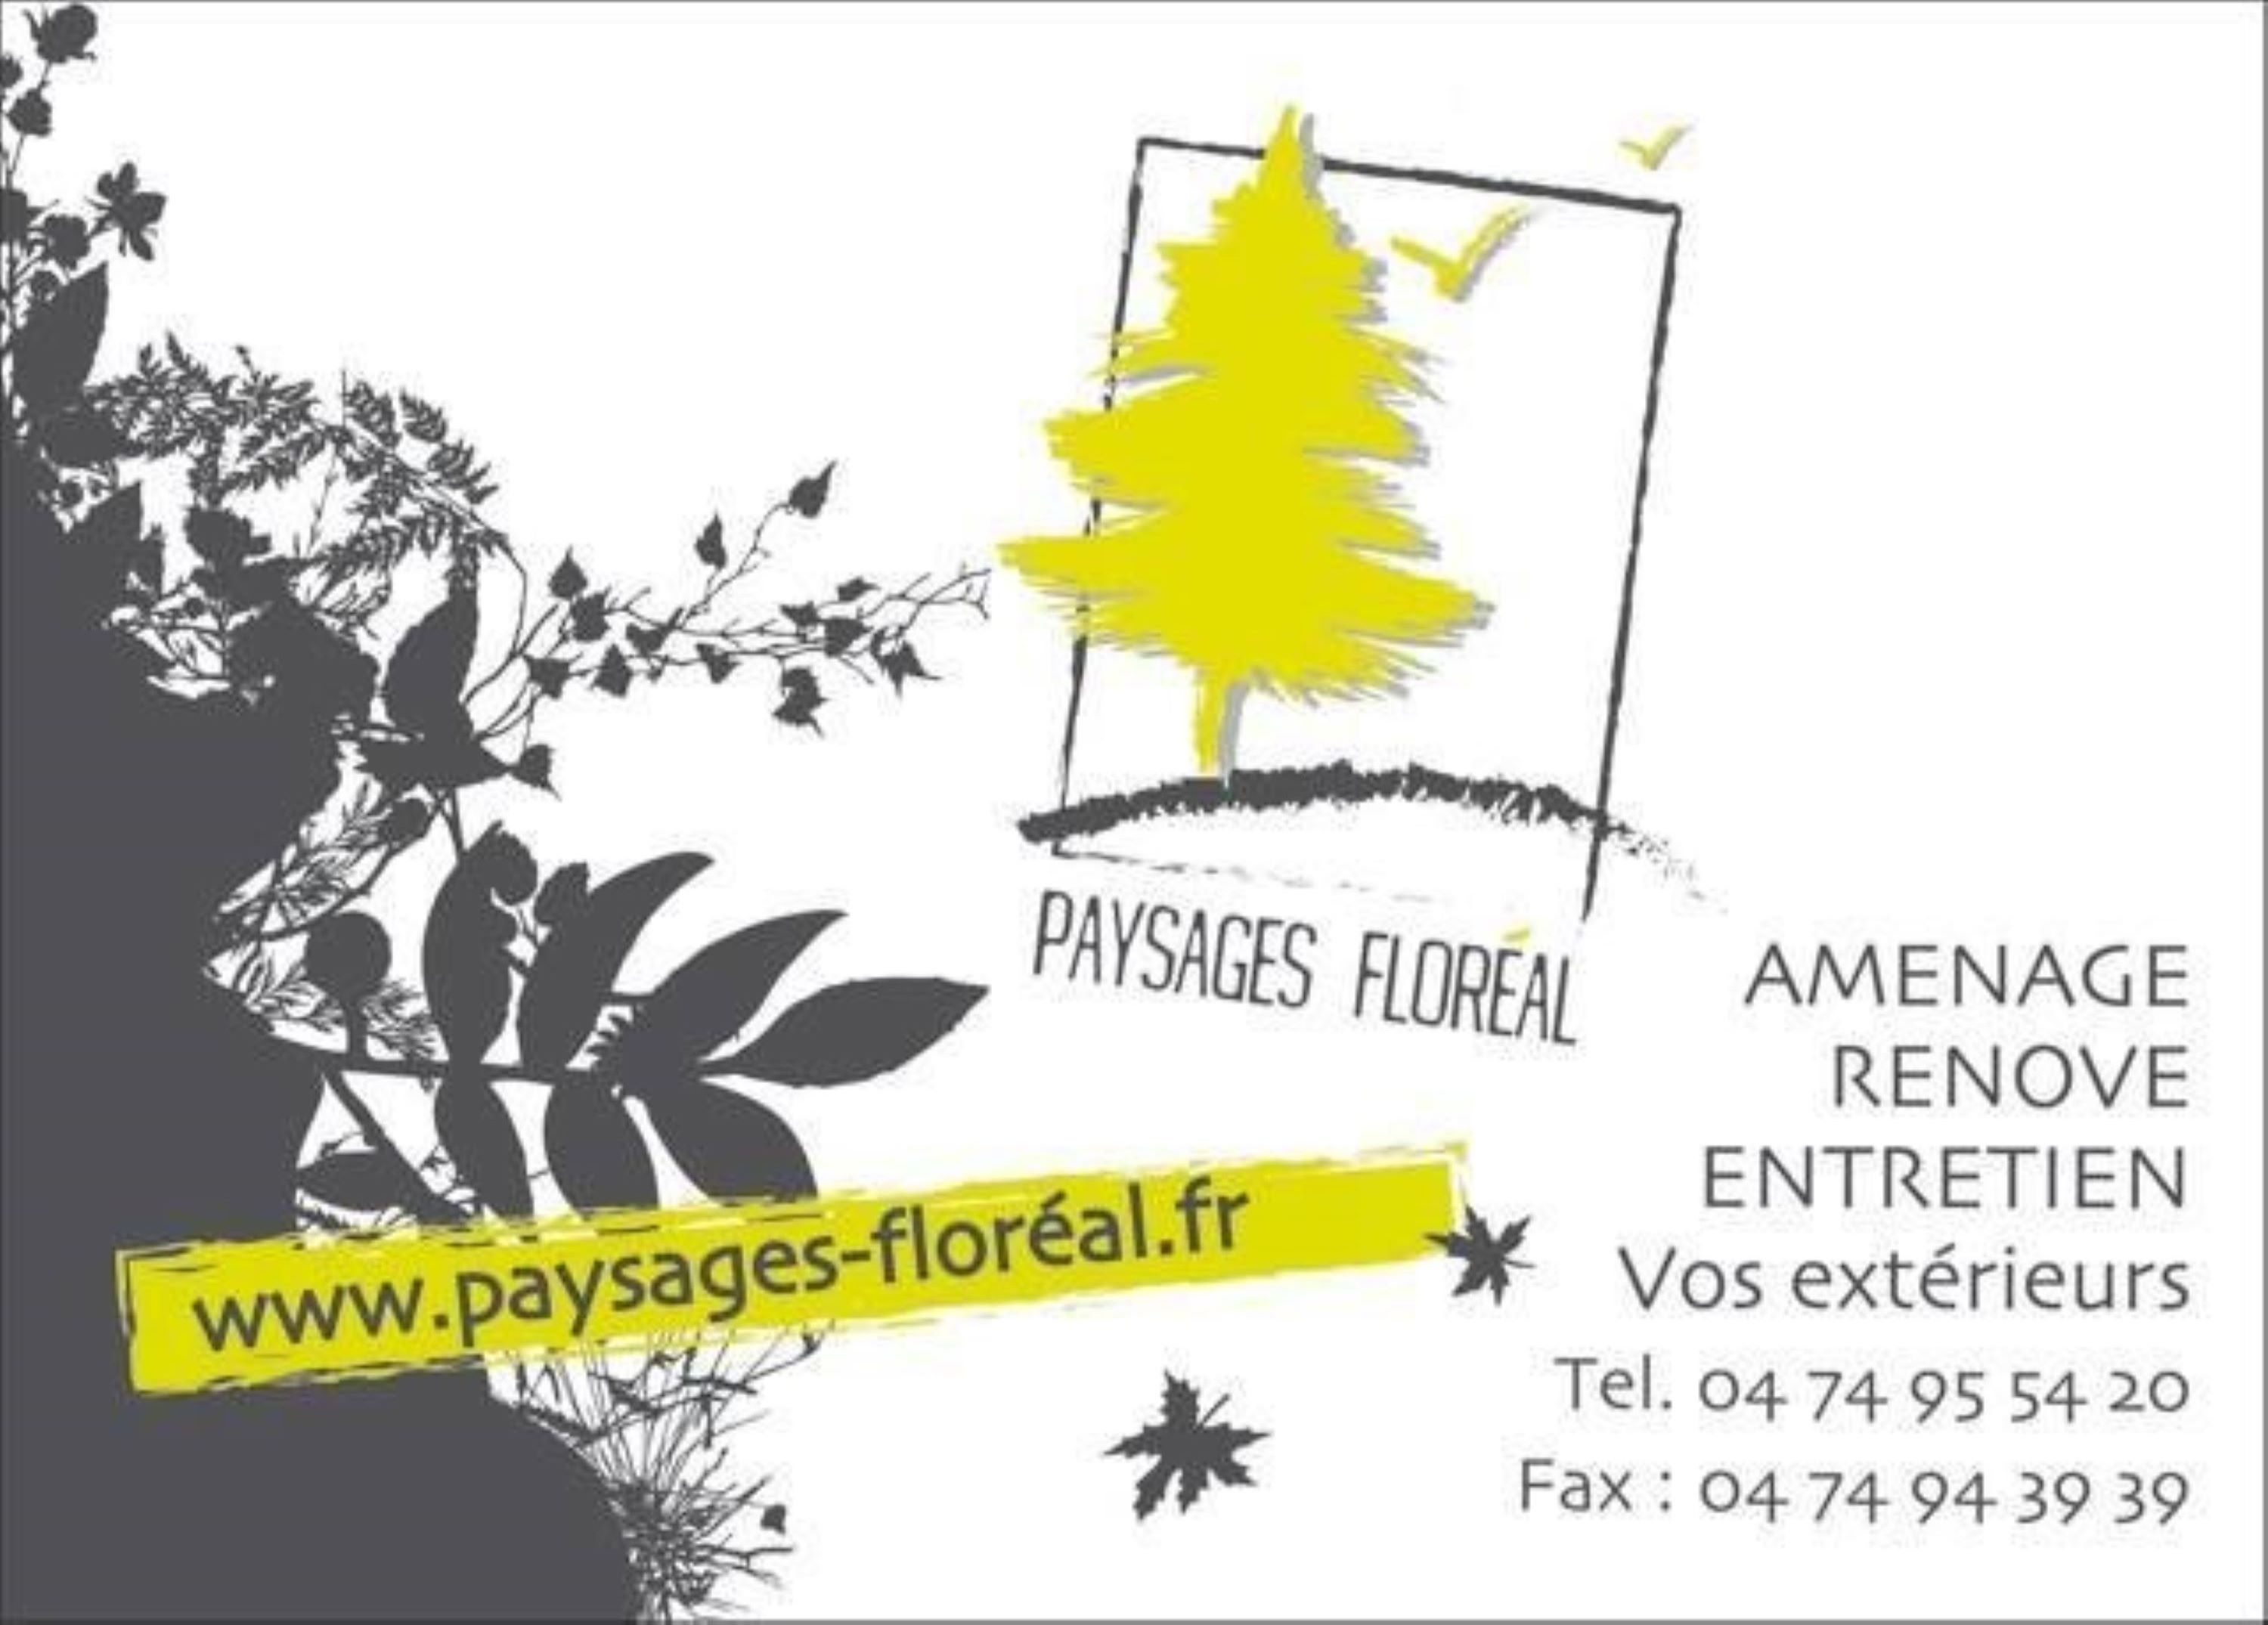 PAYSAGES FLOREAL